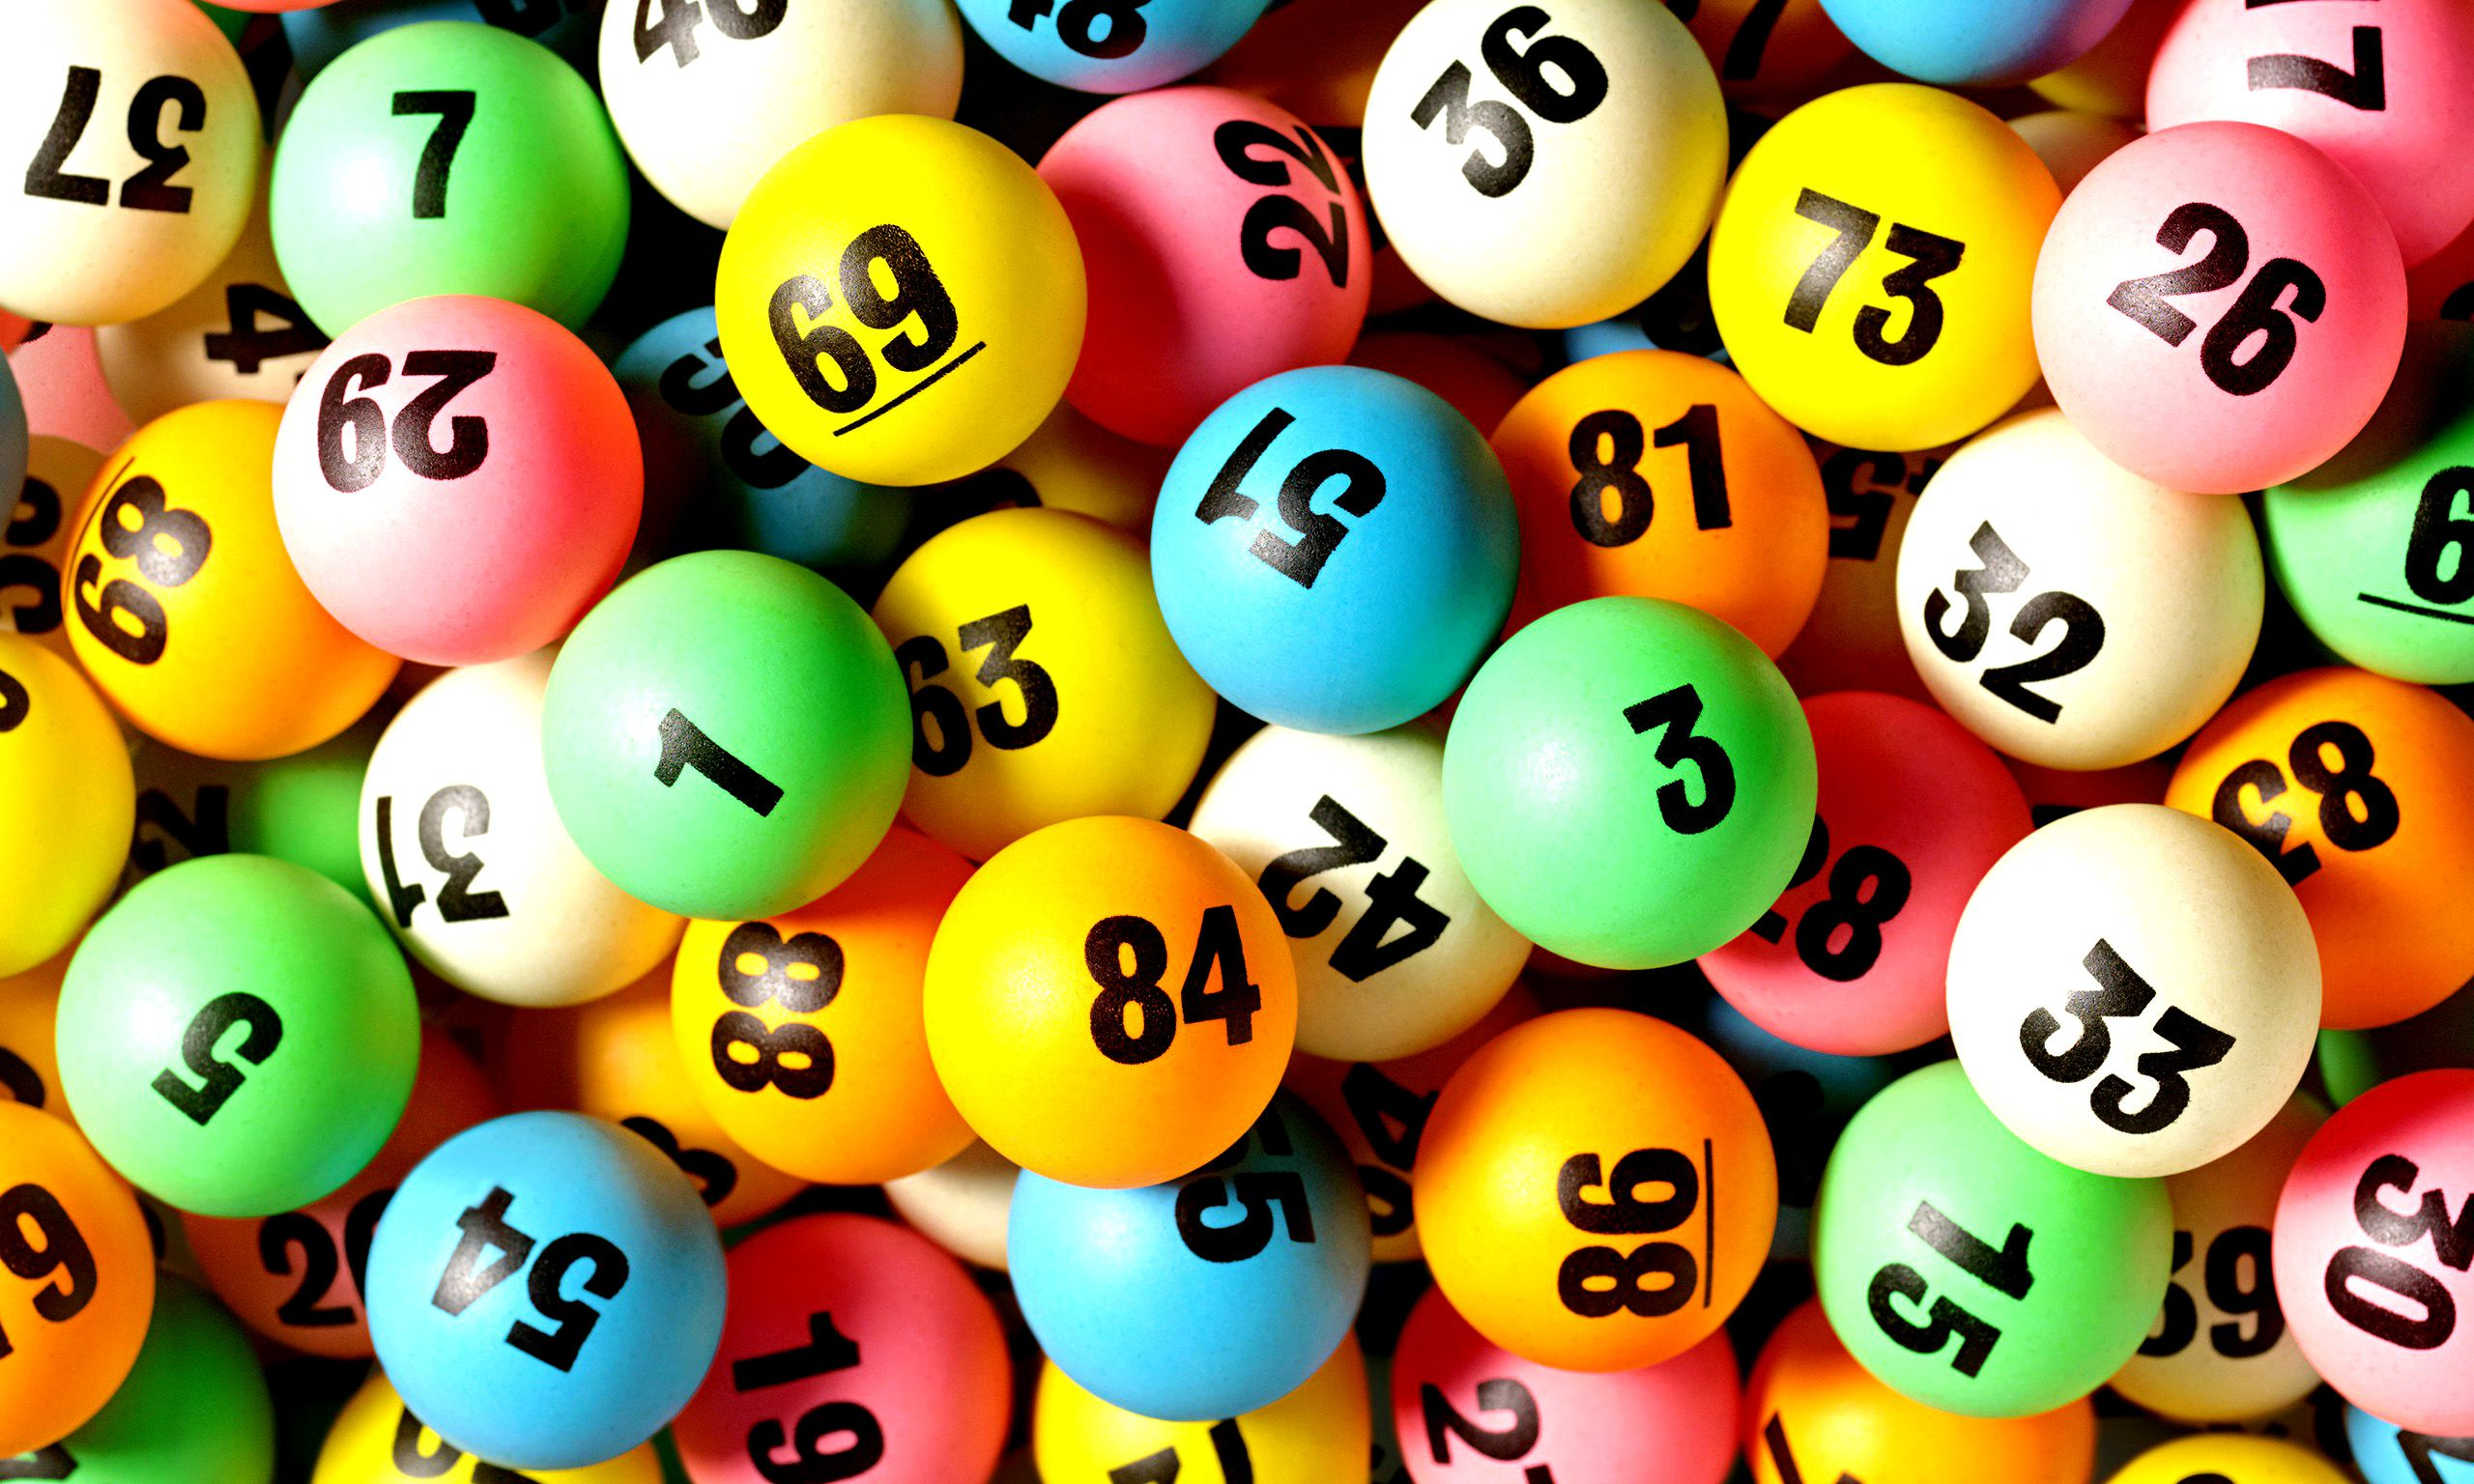 We offer a choice of 4D lottery betting from companies that